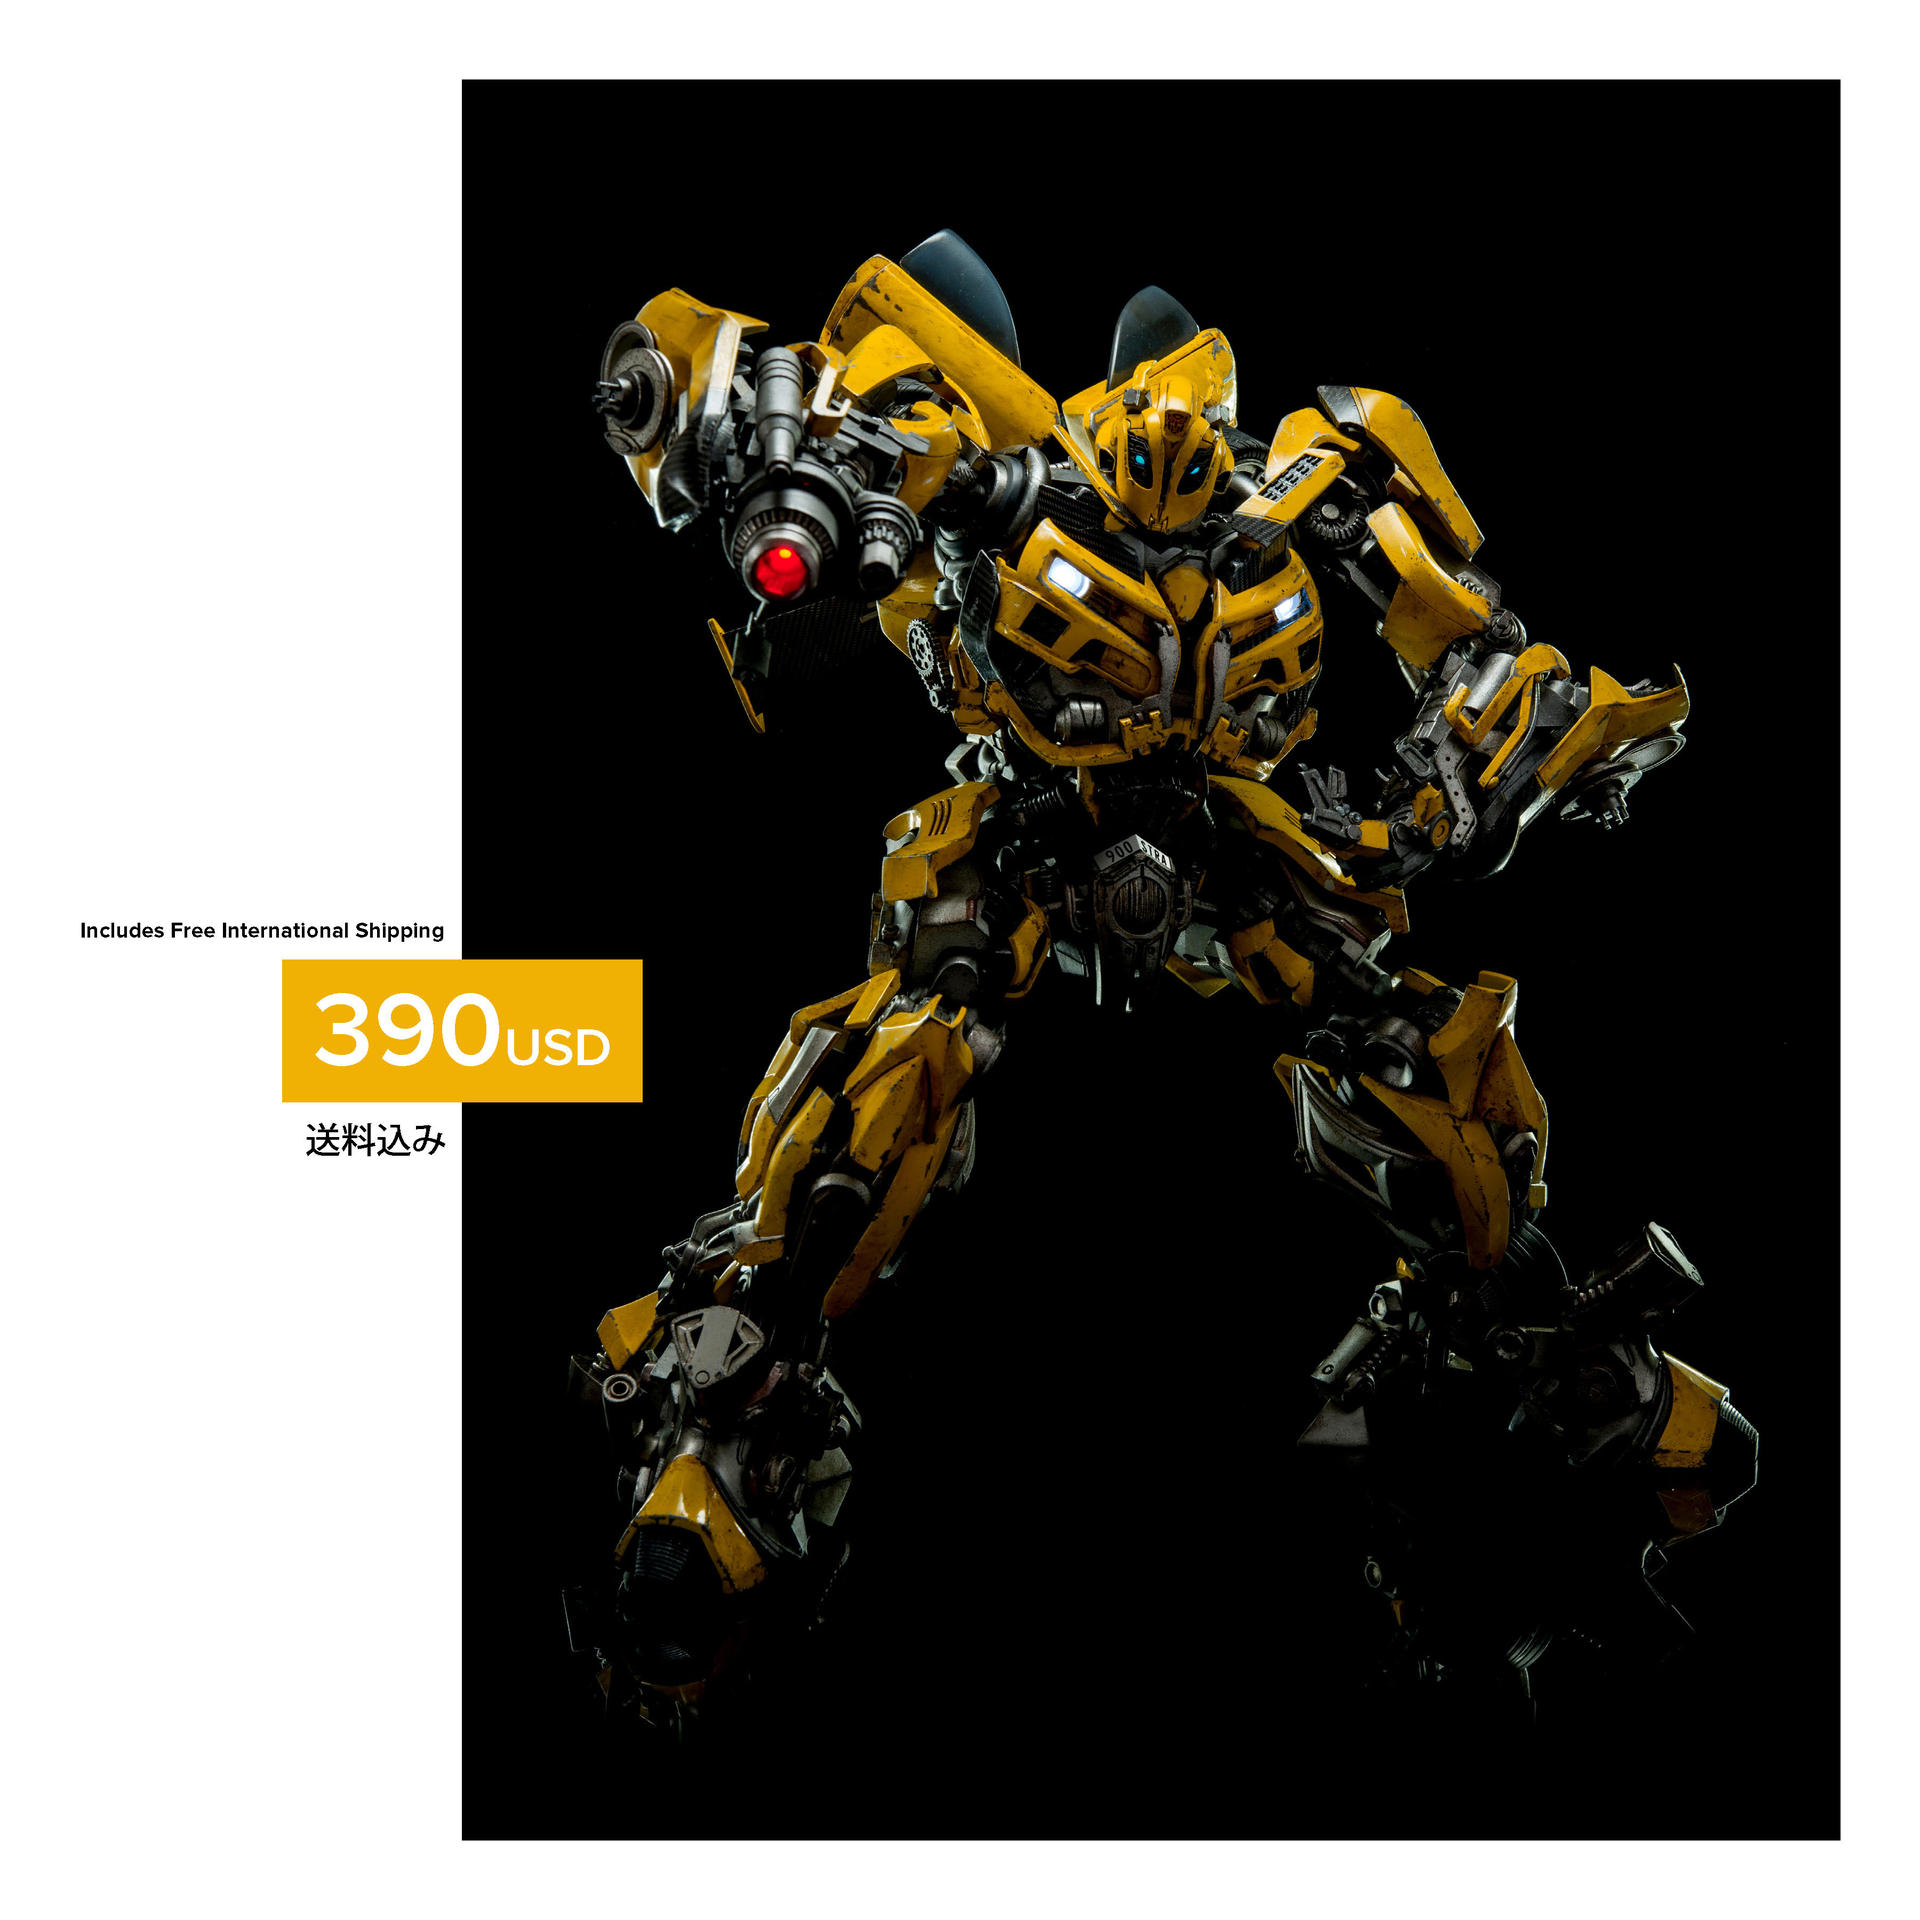 New Images and Info of 3A Transformers: Dark Of The Moon